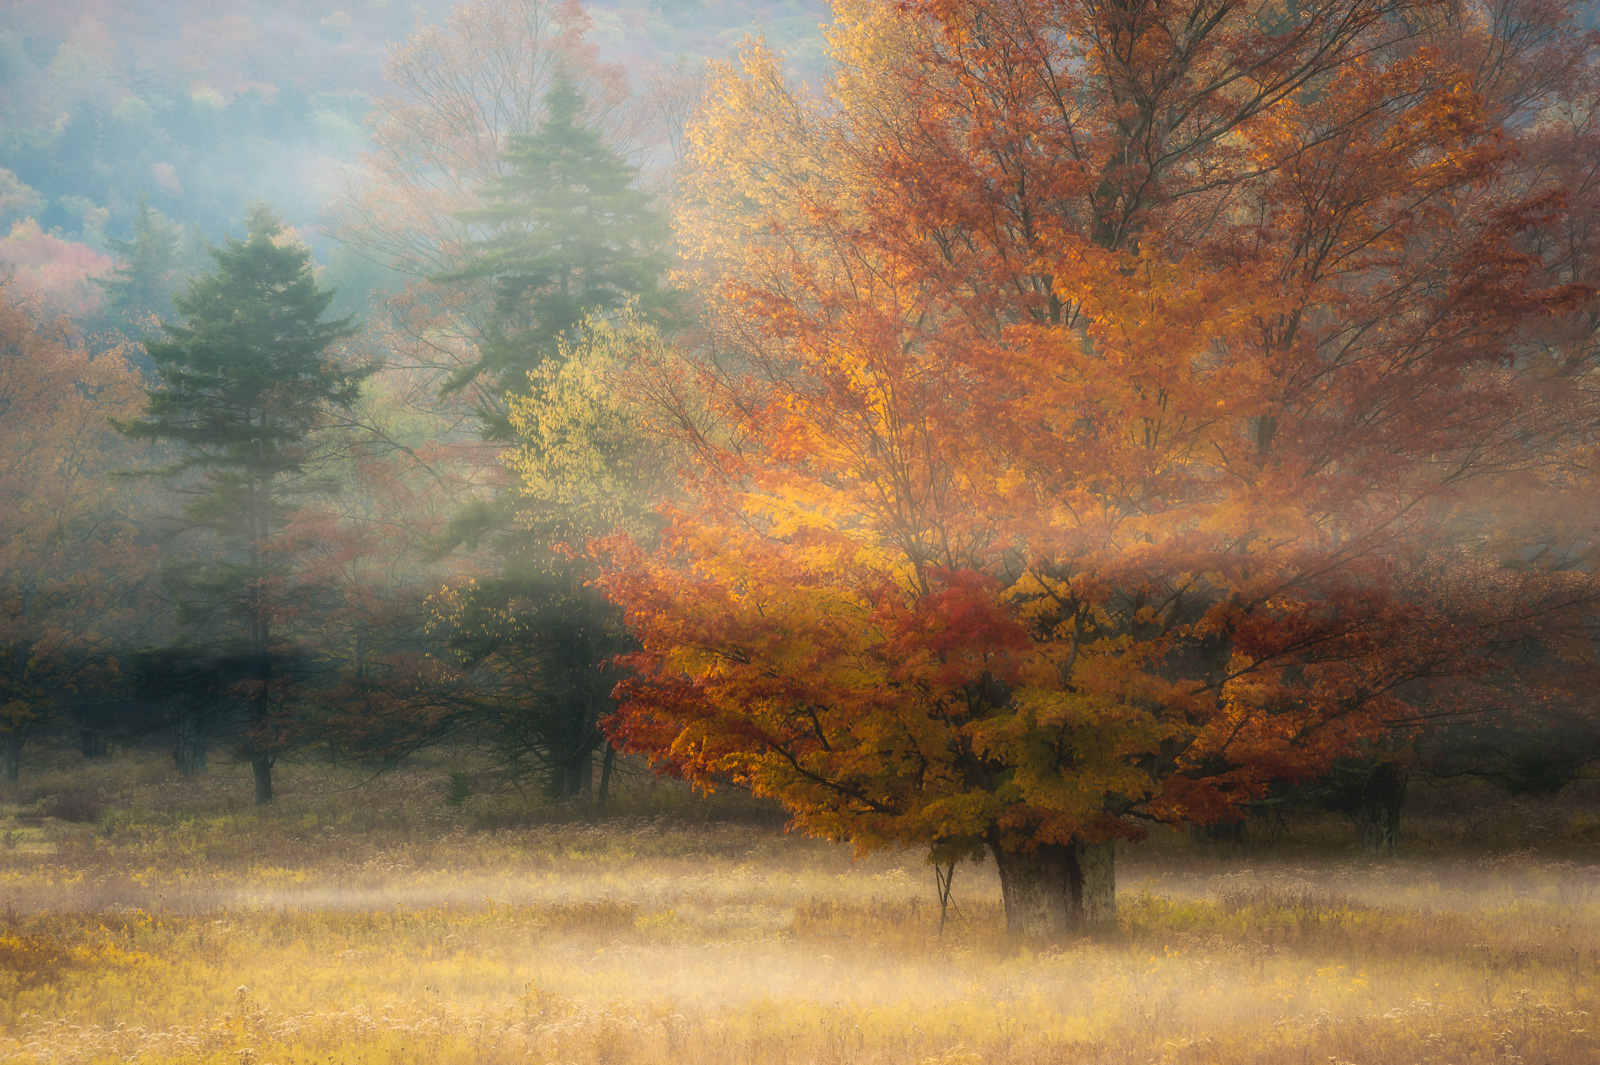 Sugar Maple and morning fog in Canaan Valley State Park. Available Print Sizes: 12x18, 16x24, 20x30, 24x36, 30x45, 40x60Limited...